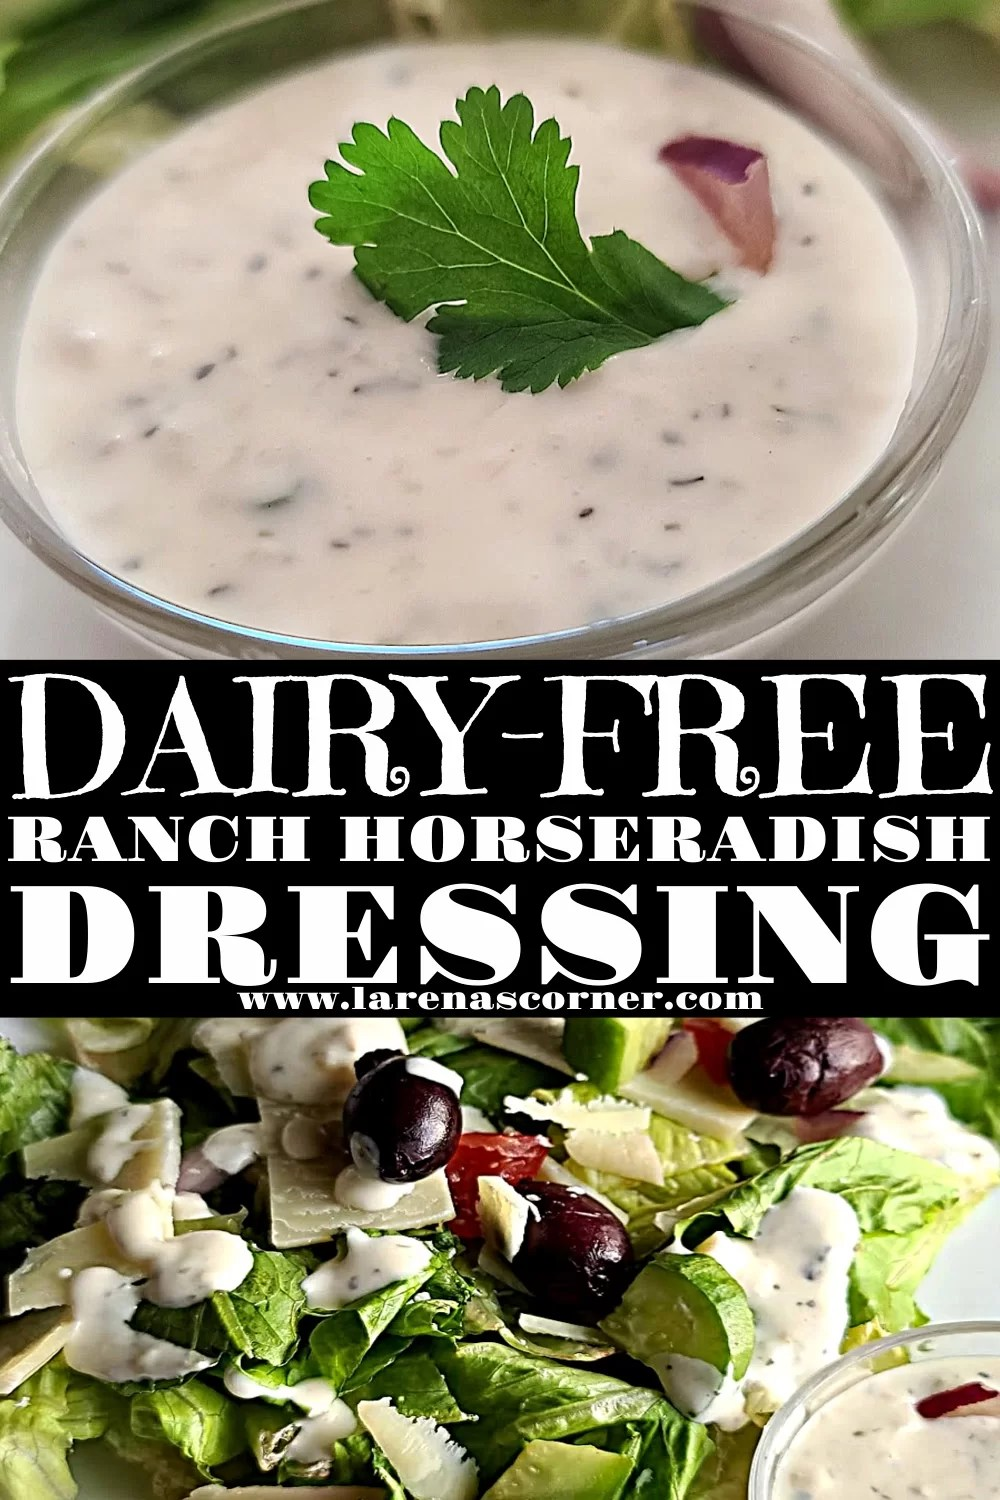 Two pictures of the Dairy-Free Ranch Horseradish dressing. One of just the dressing one of it on a salad.